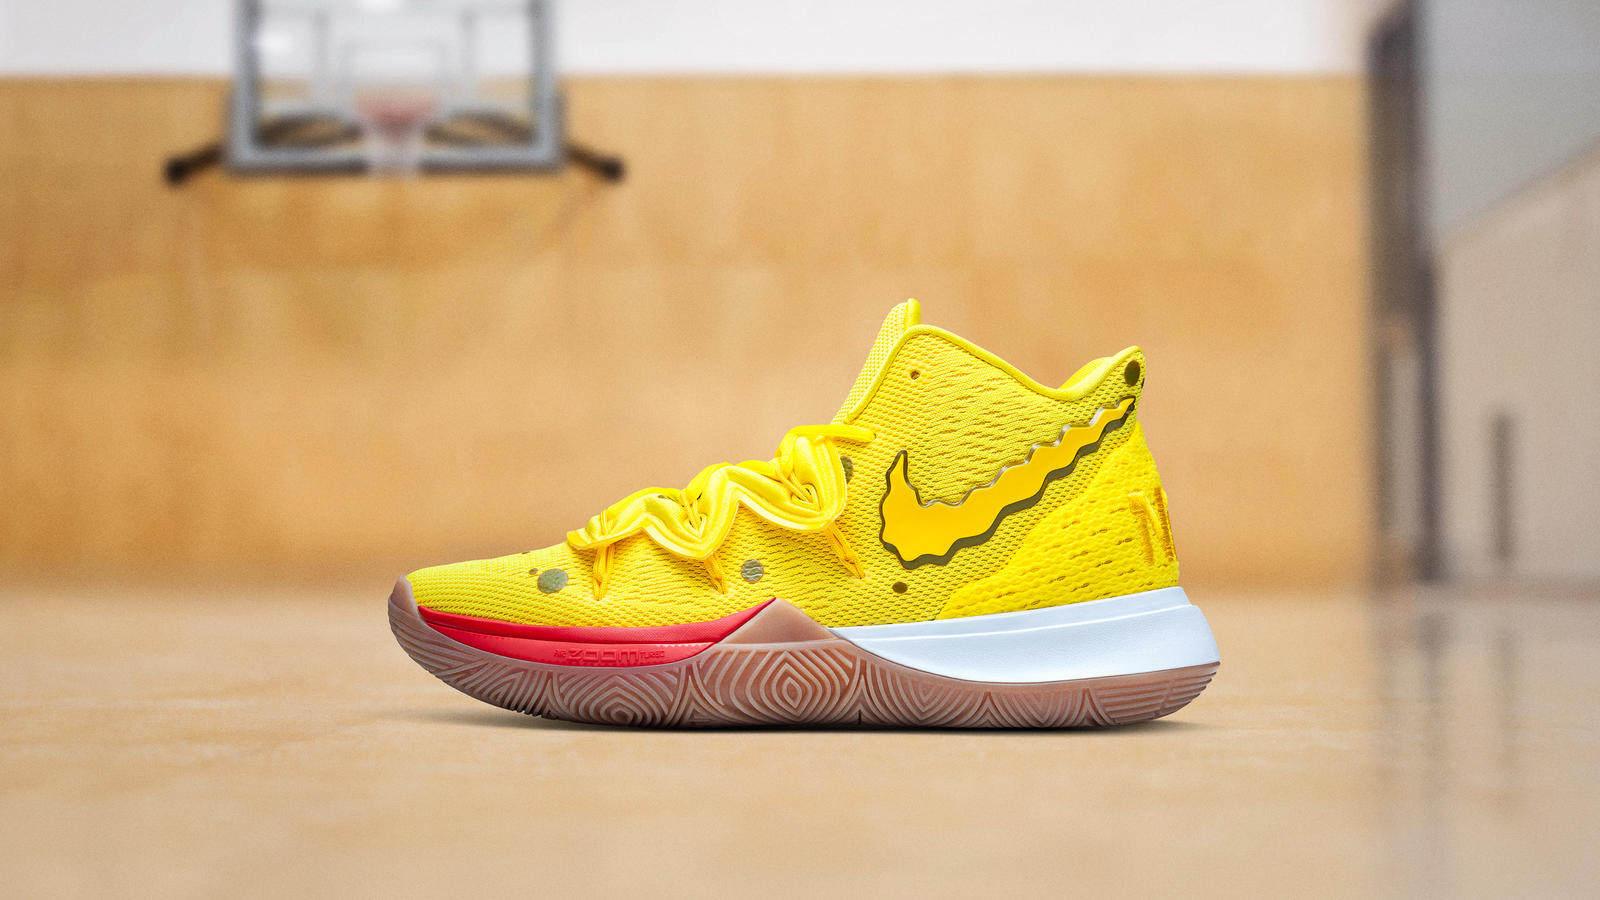 Nike KYRIE x SpongeBob SquarePants Collection Nike News